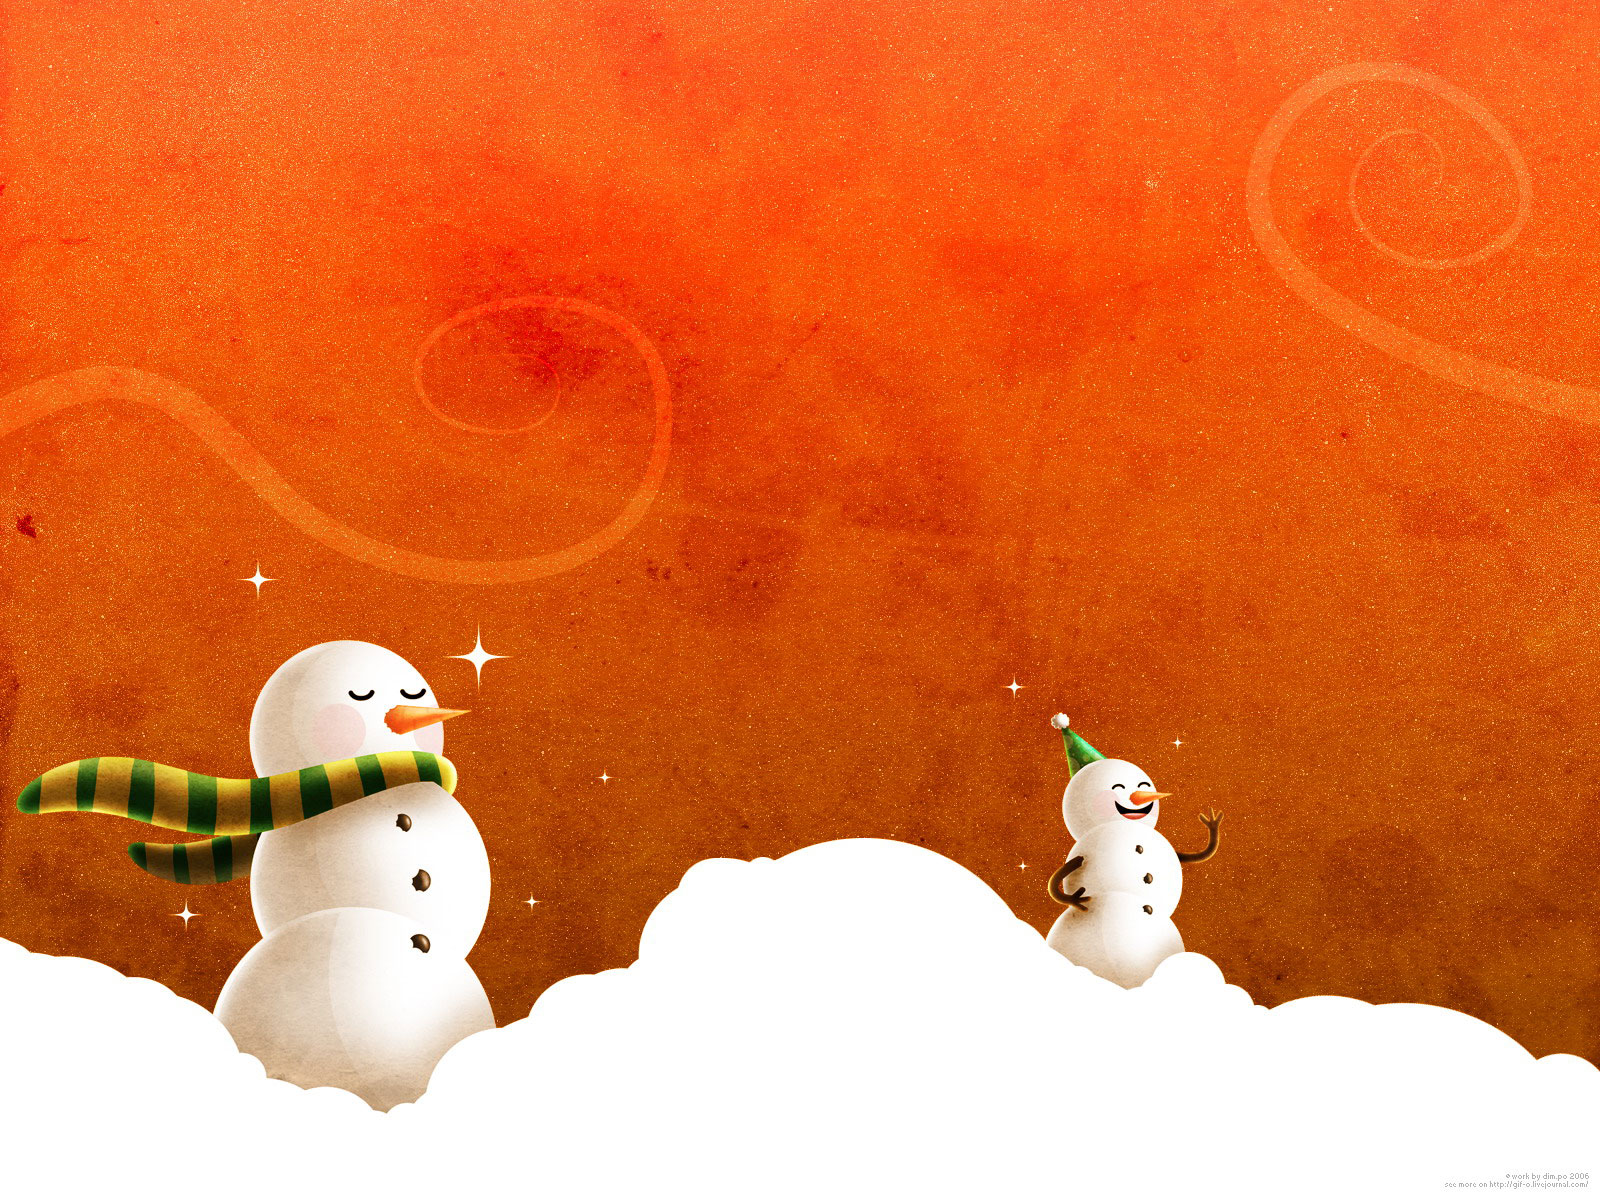 Snow man - cool wallpaper